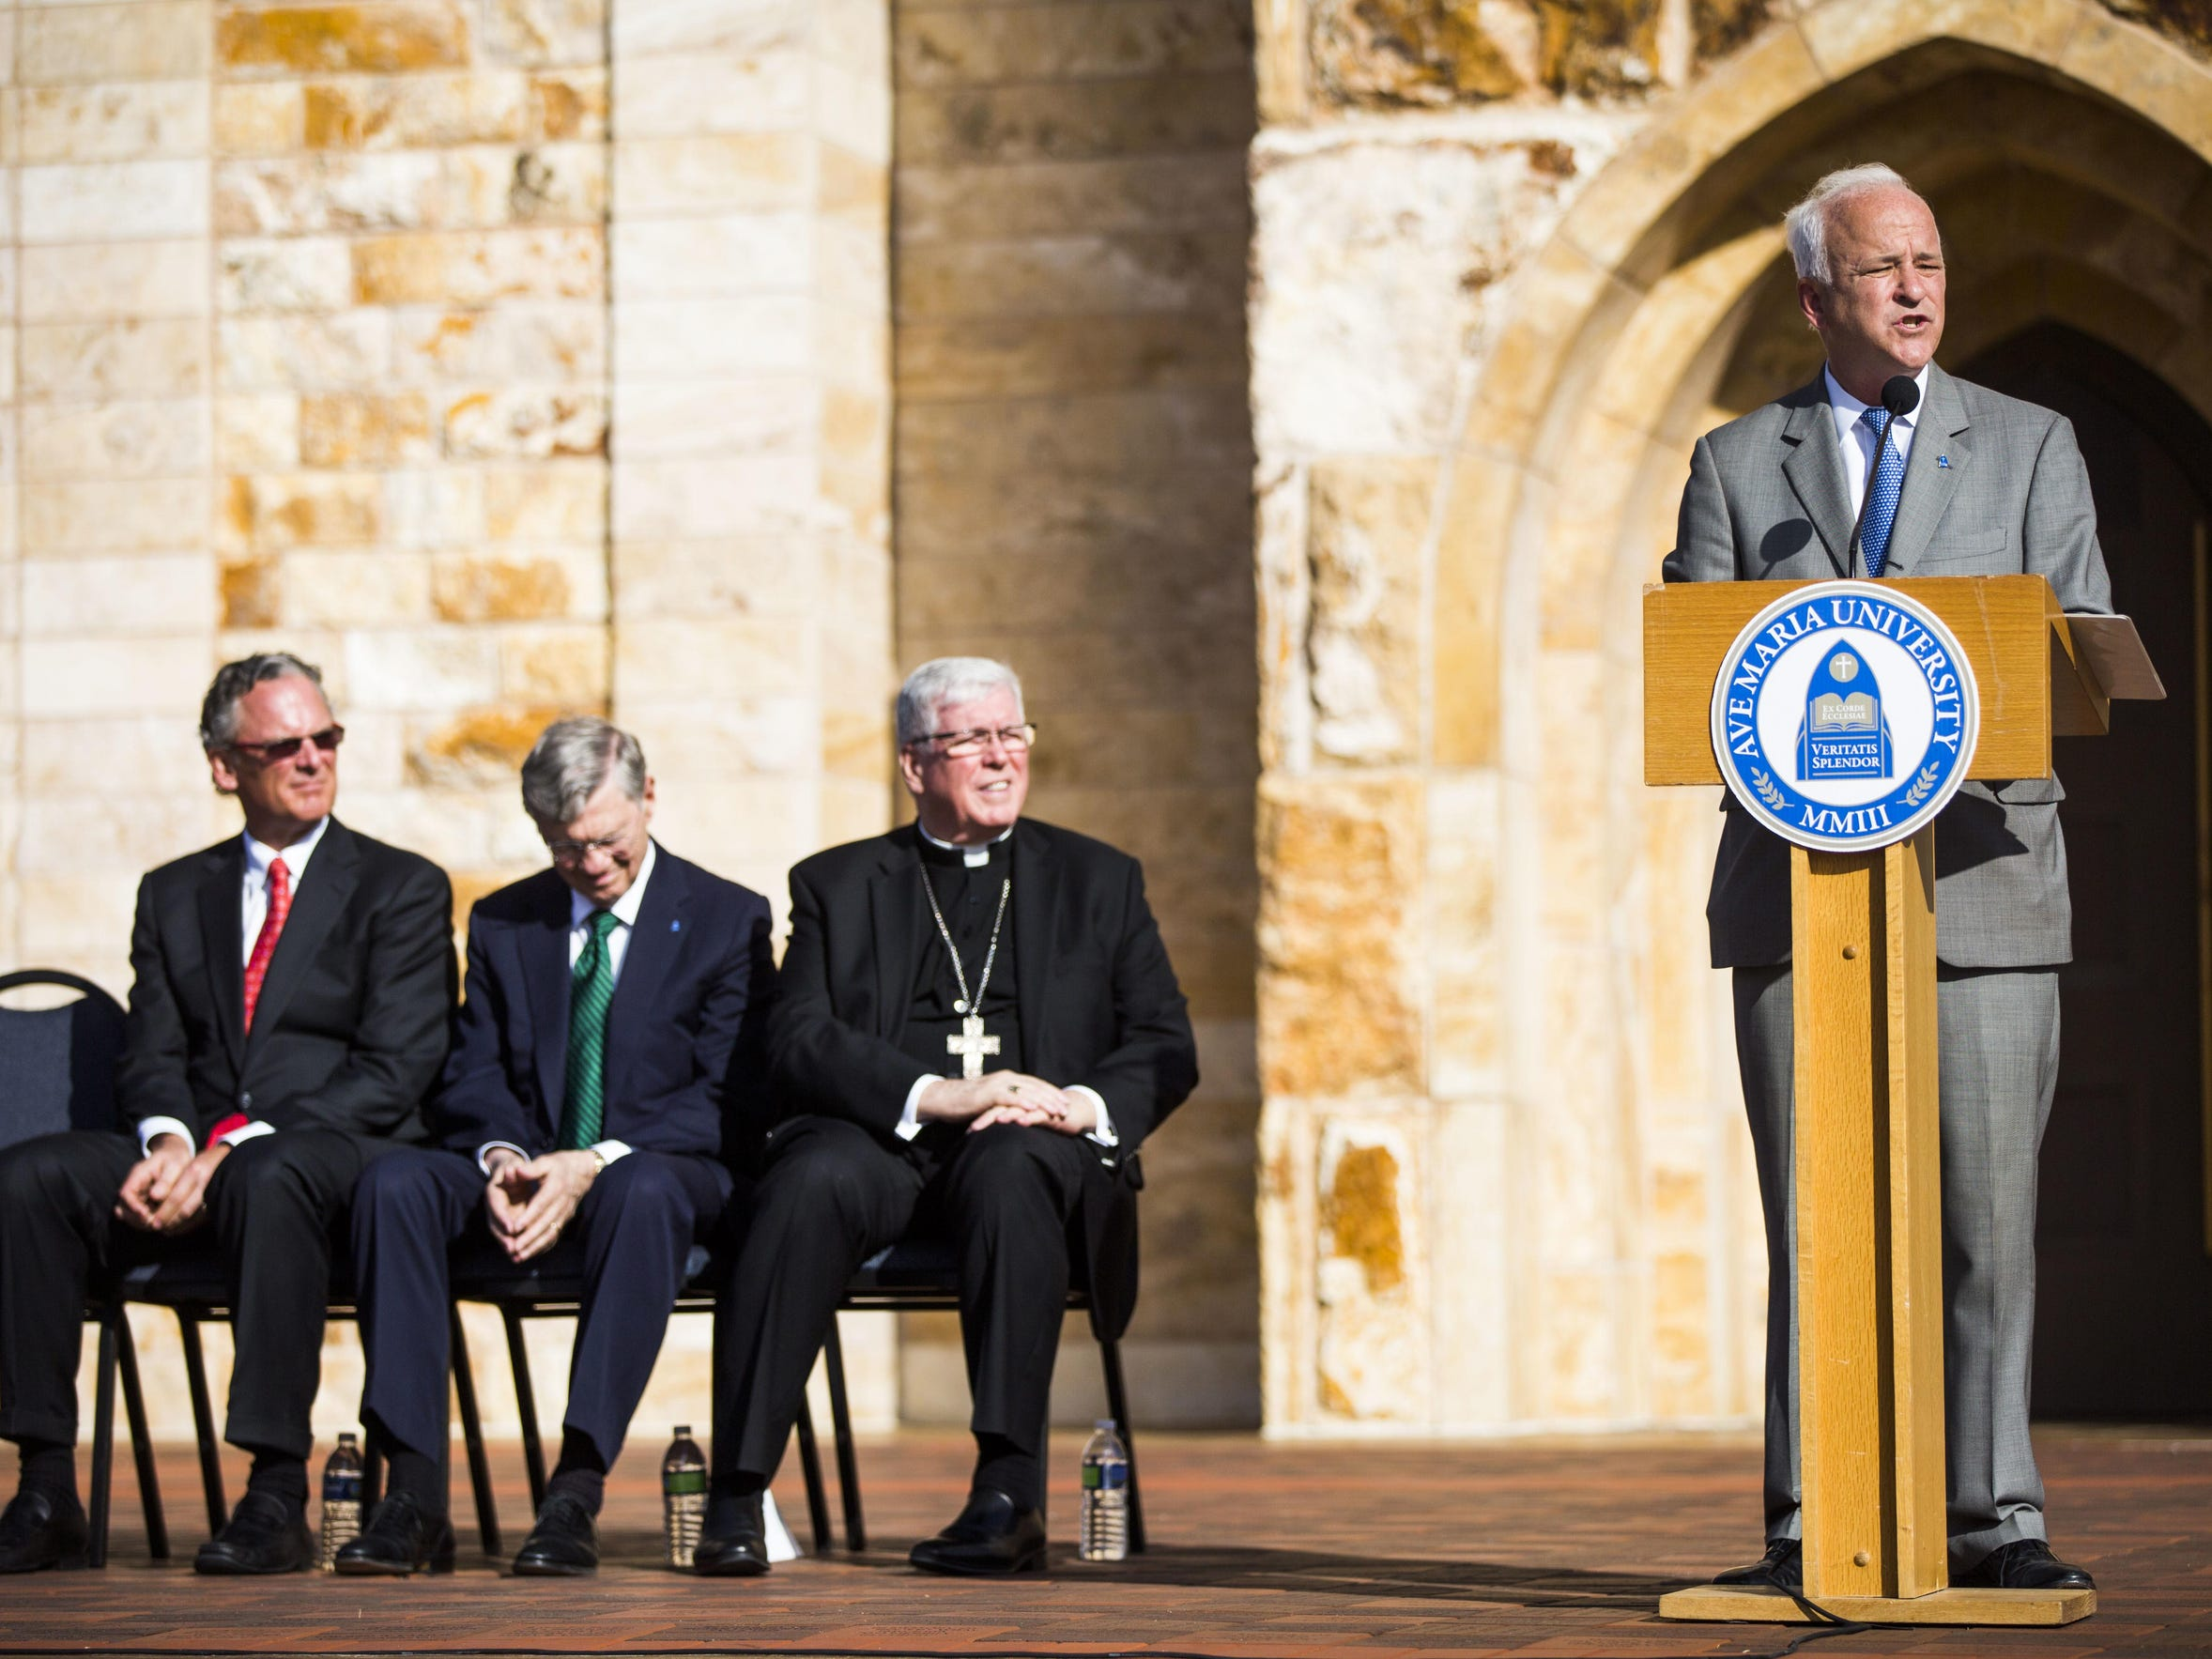 Ave Maria University President Jim Towey speaks on